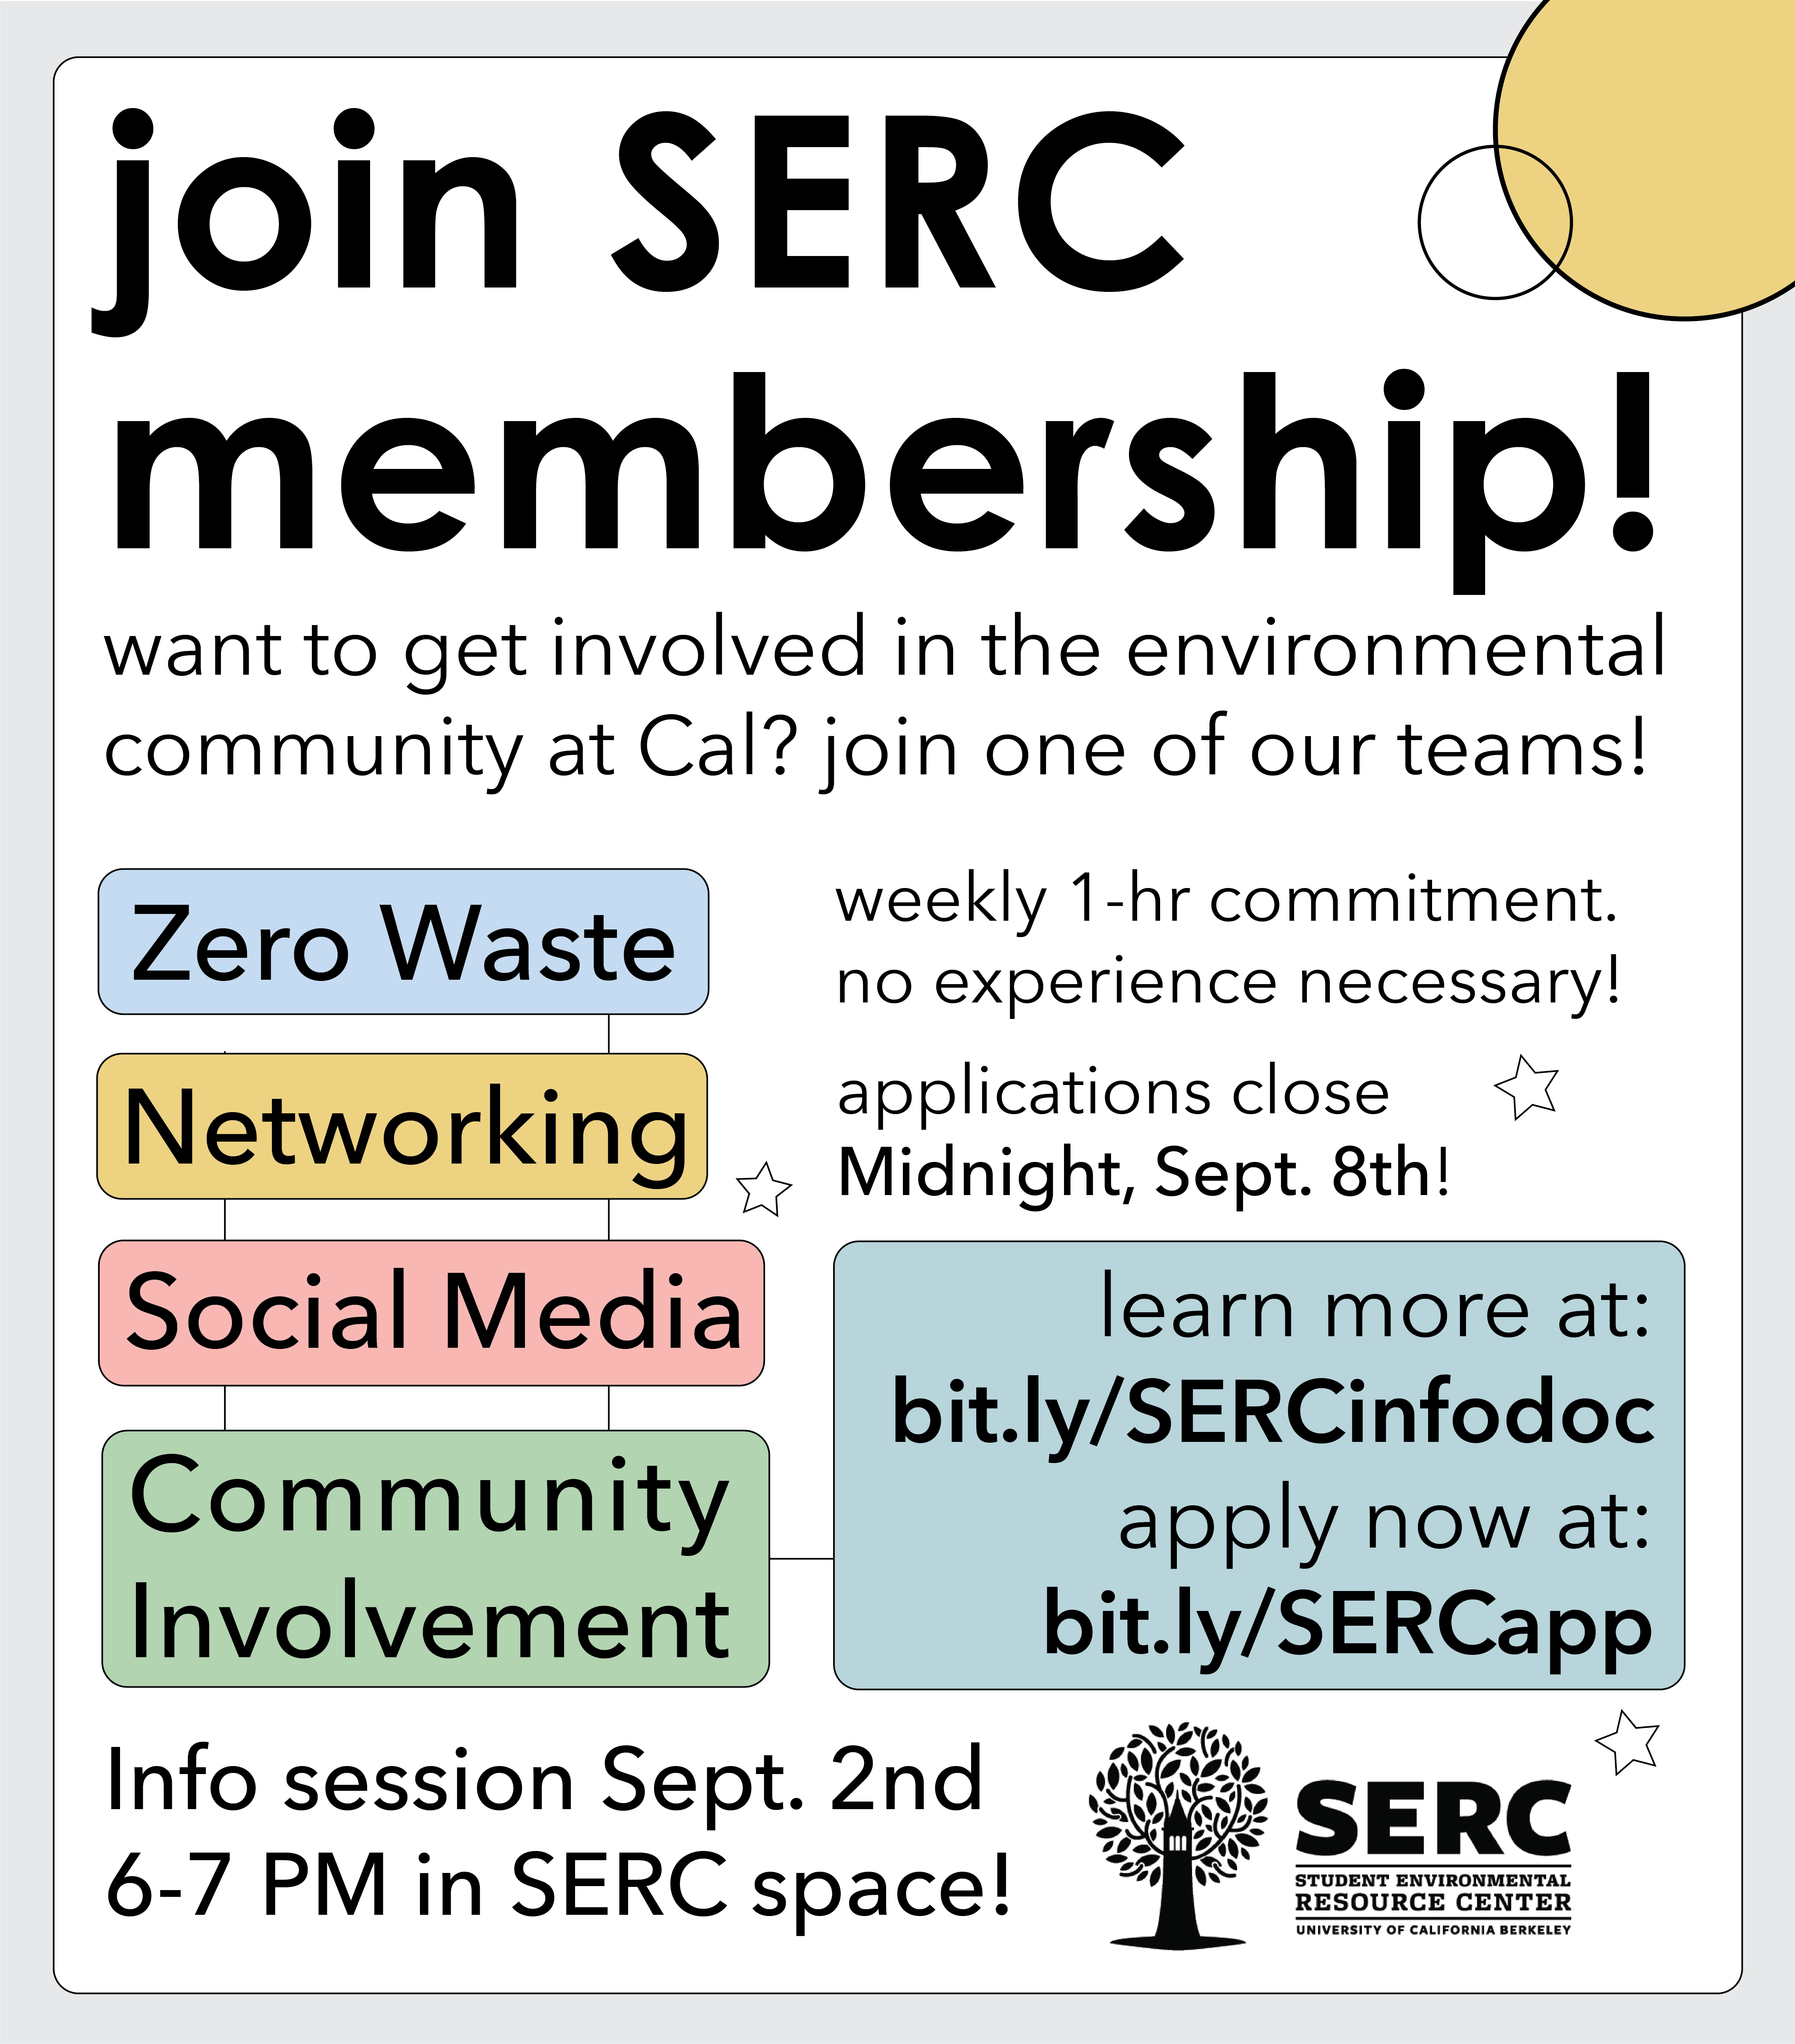 image entitled 'Join SERC membership!' and lists the 4 teams we are offering this semsester: Zero waste, Networking, Social Media, & Community Involvement. Applications due Midnight, Sept. 8th